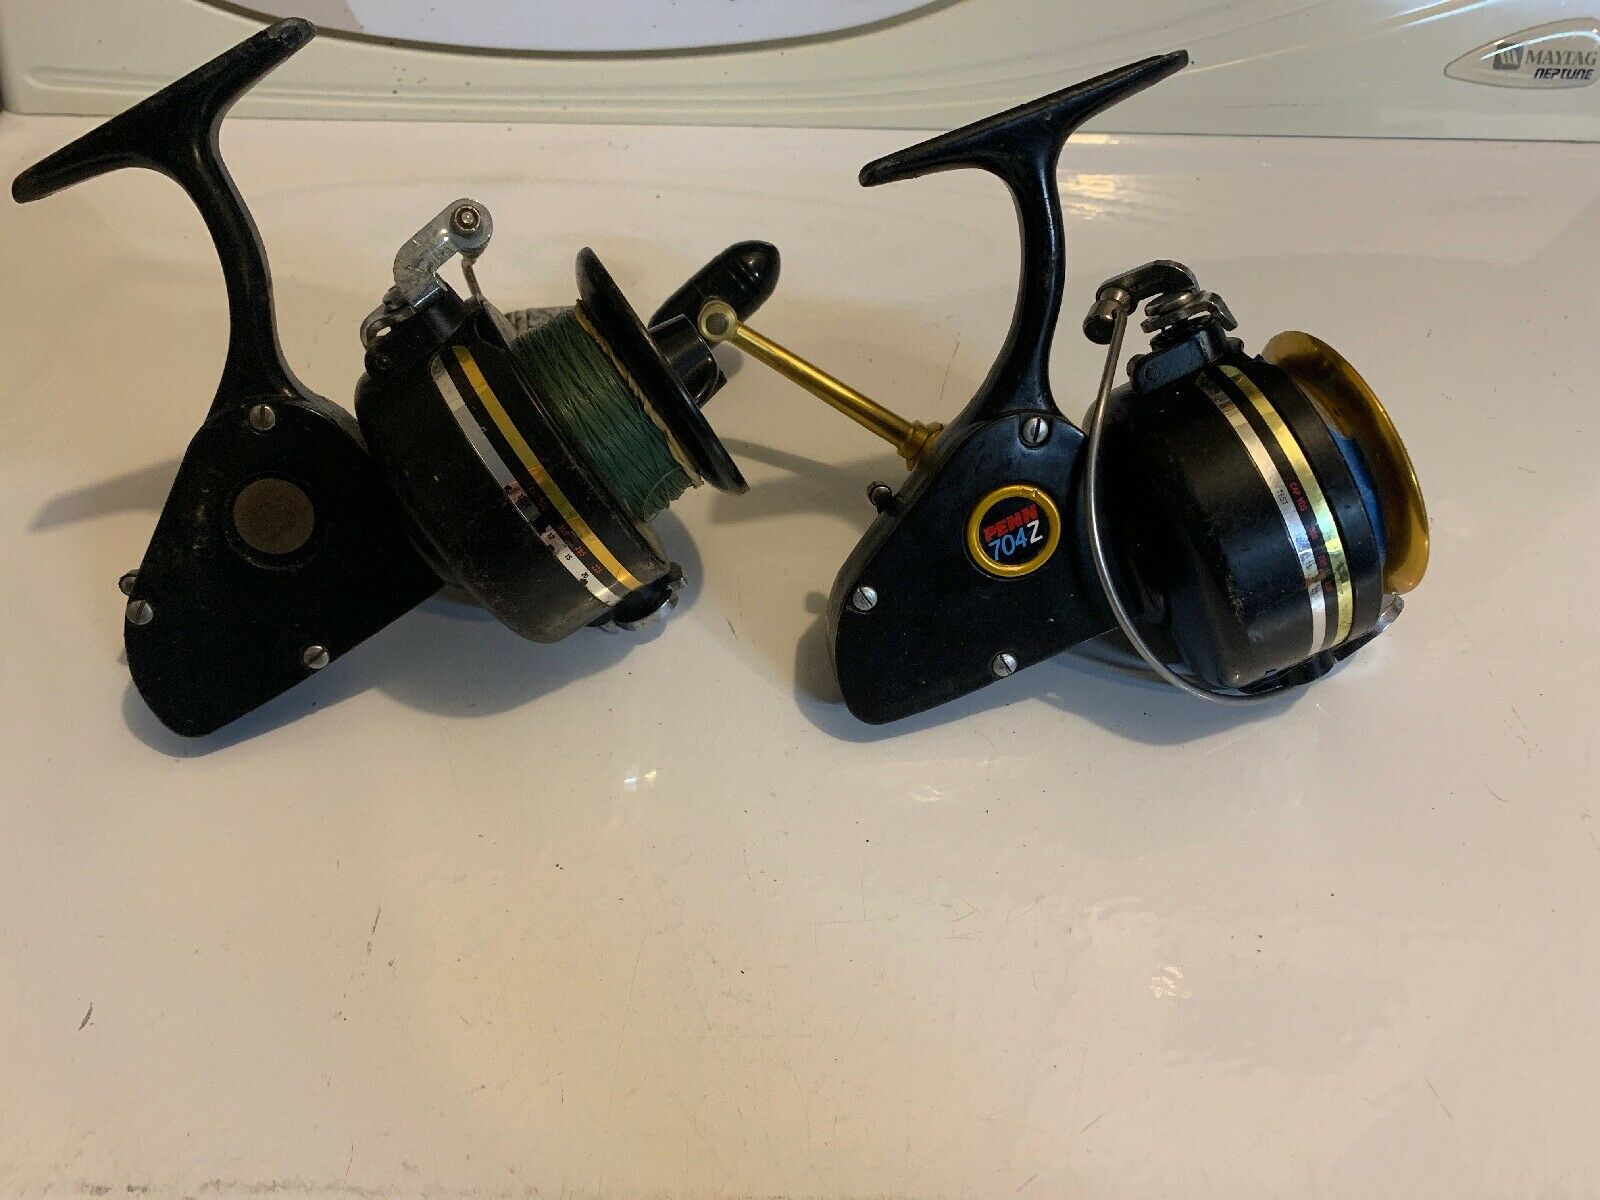 Lote de 2 Vintage 704Z Penn Spinfisher Agua Salada Spinning Carretes